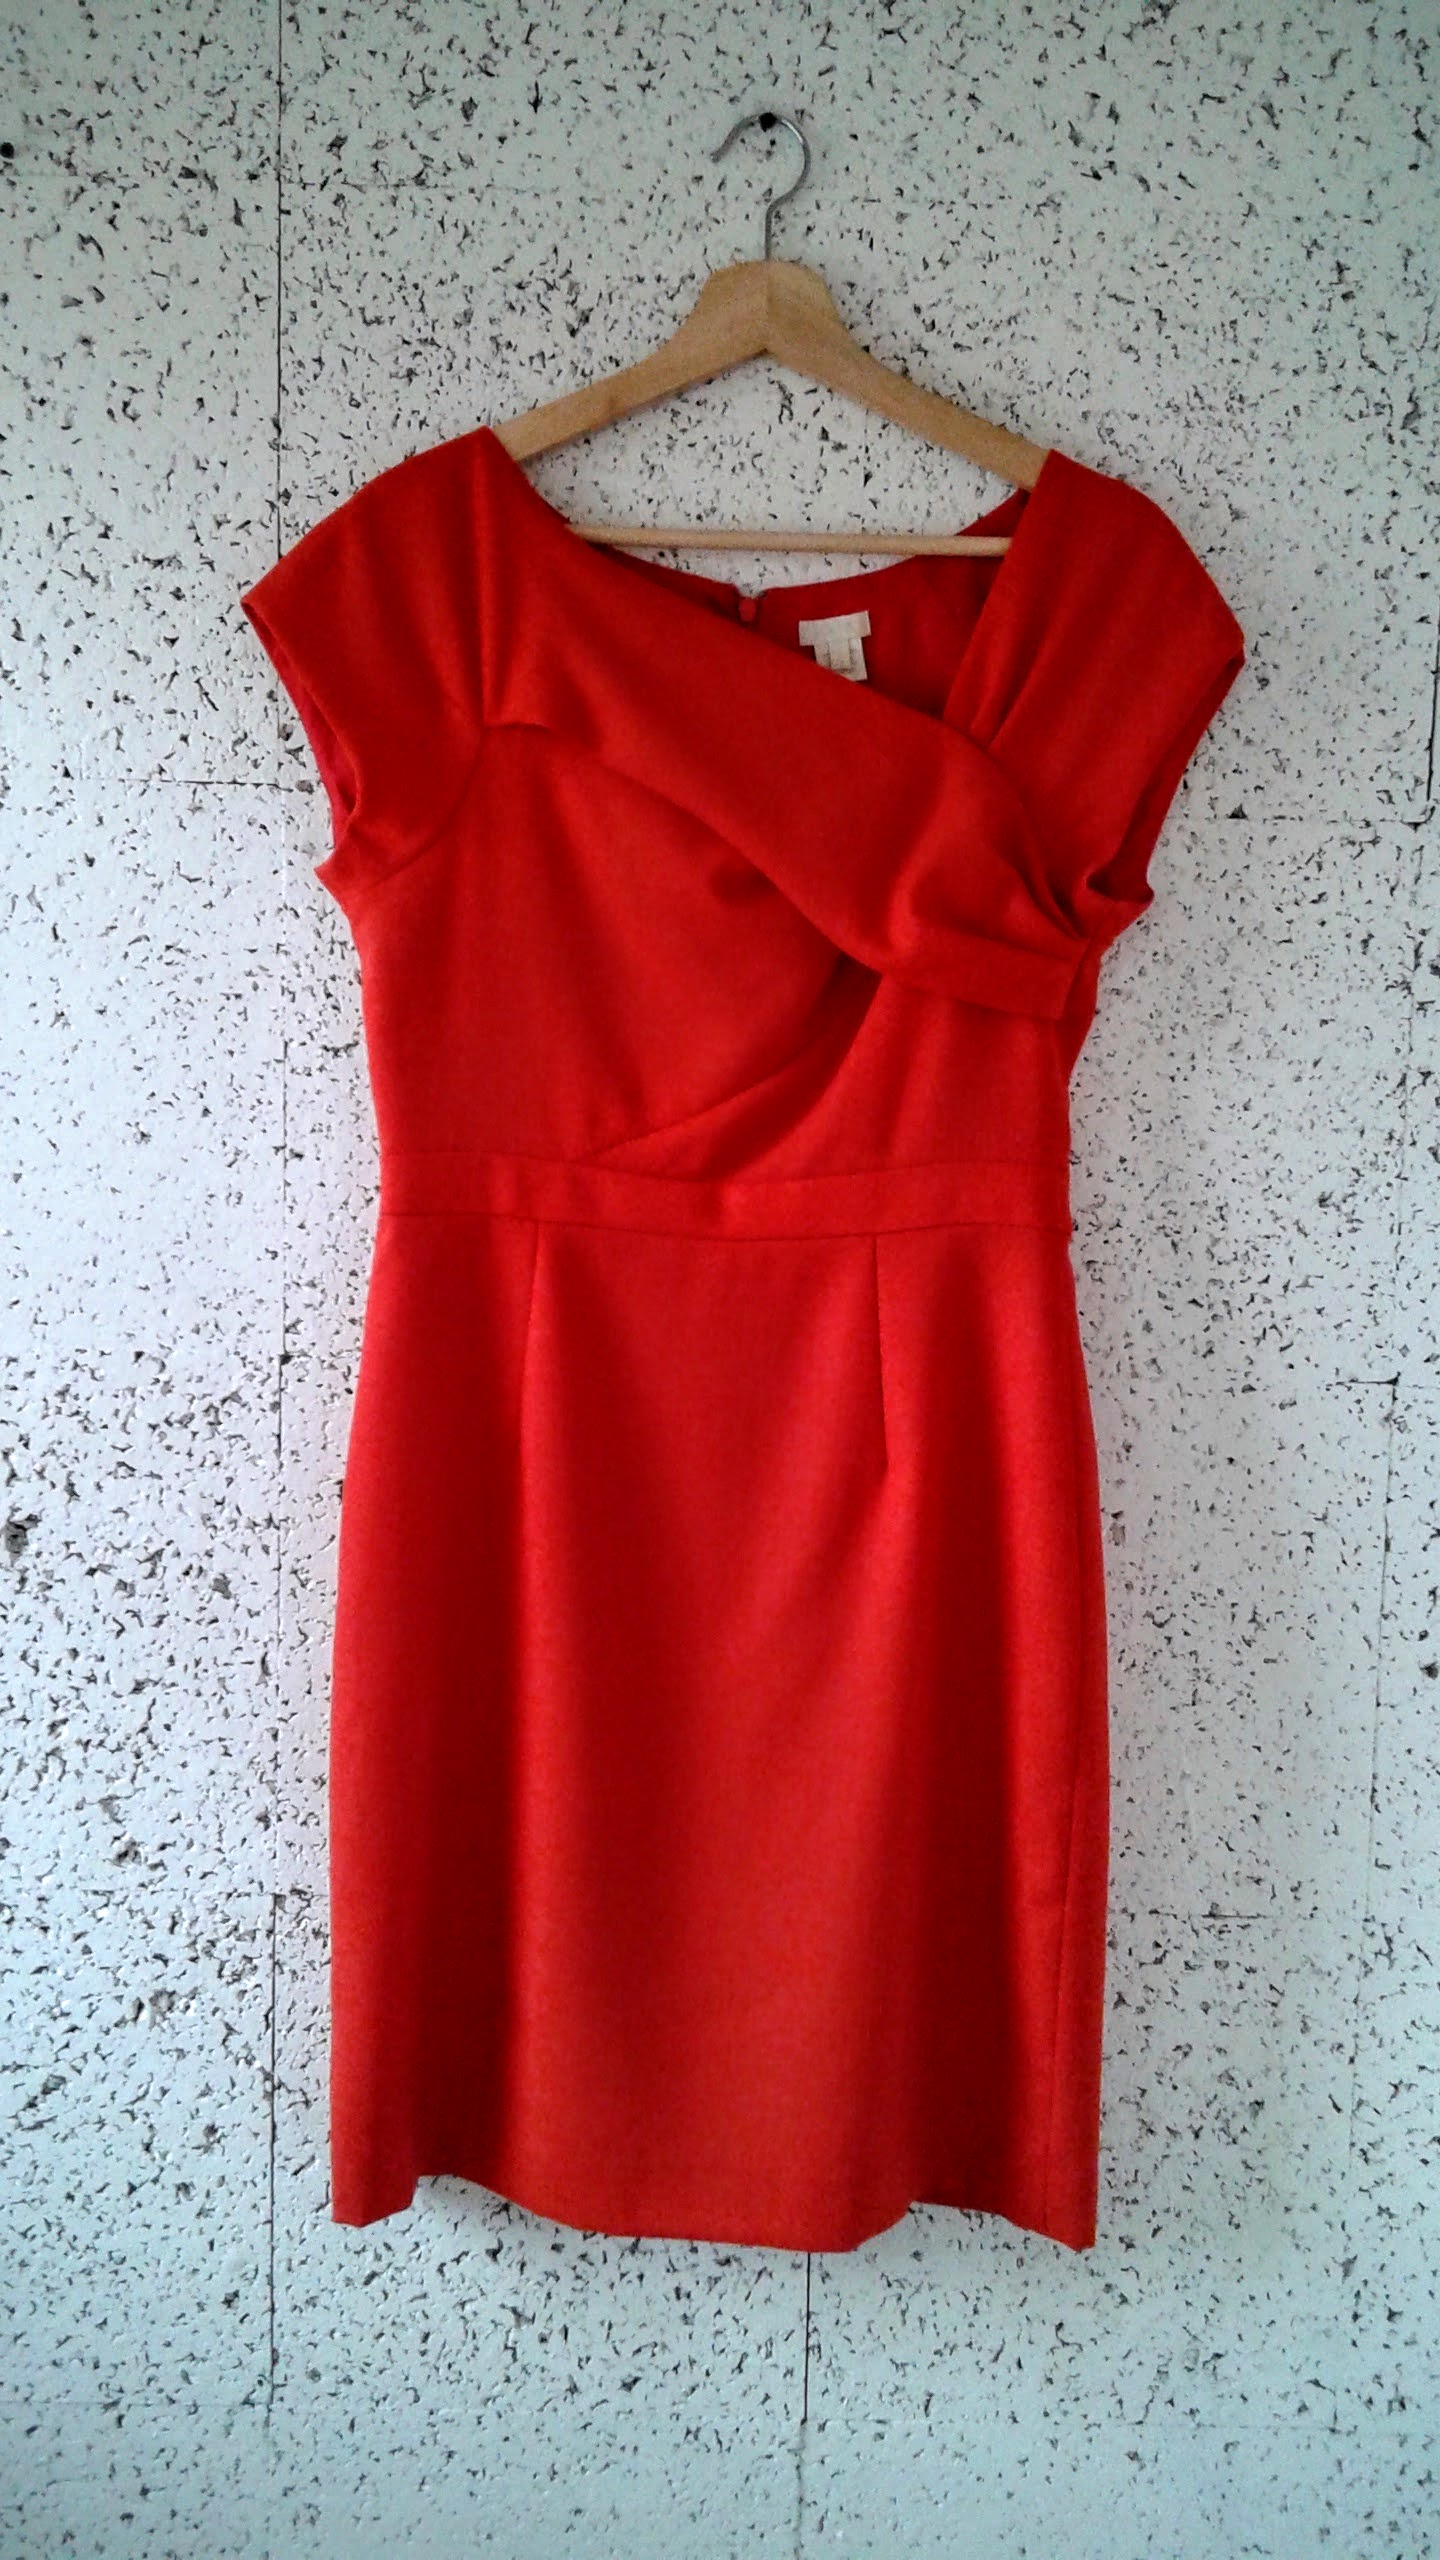 JCrew  dress; Size 6, $38